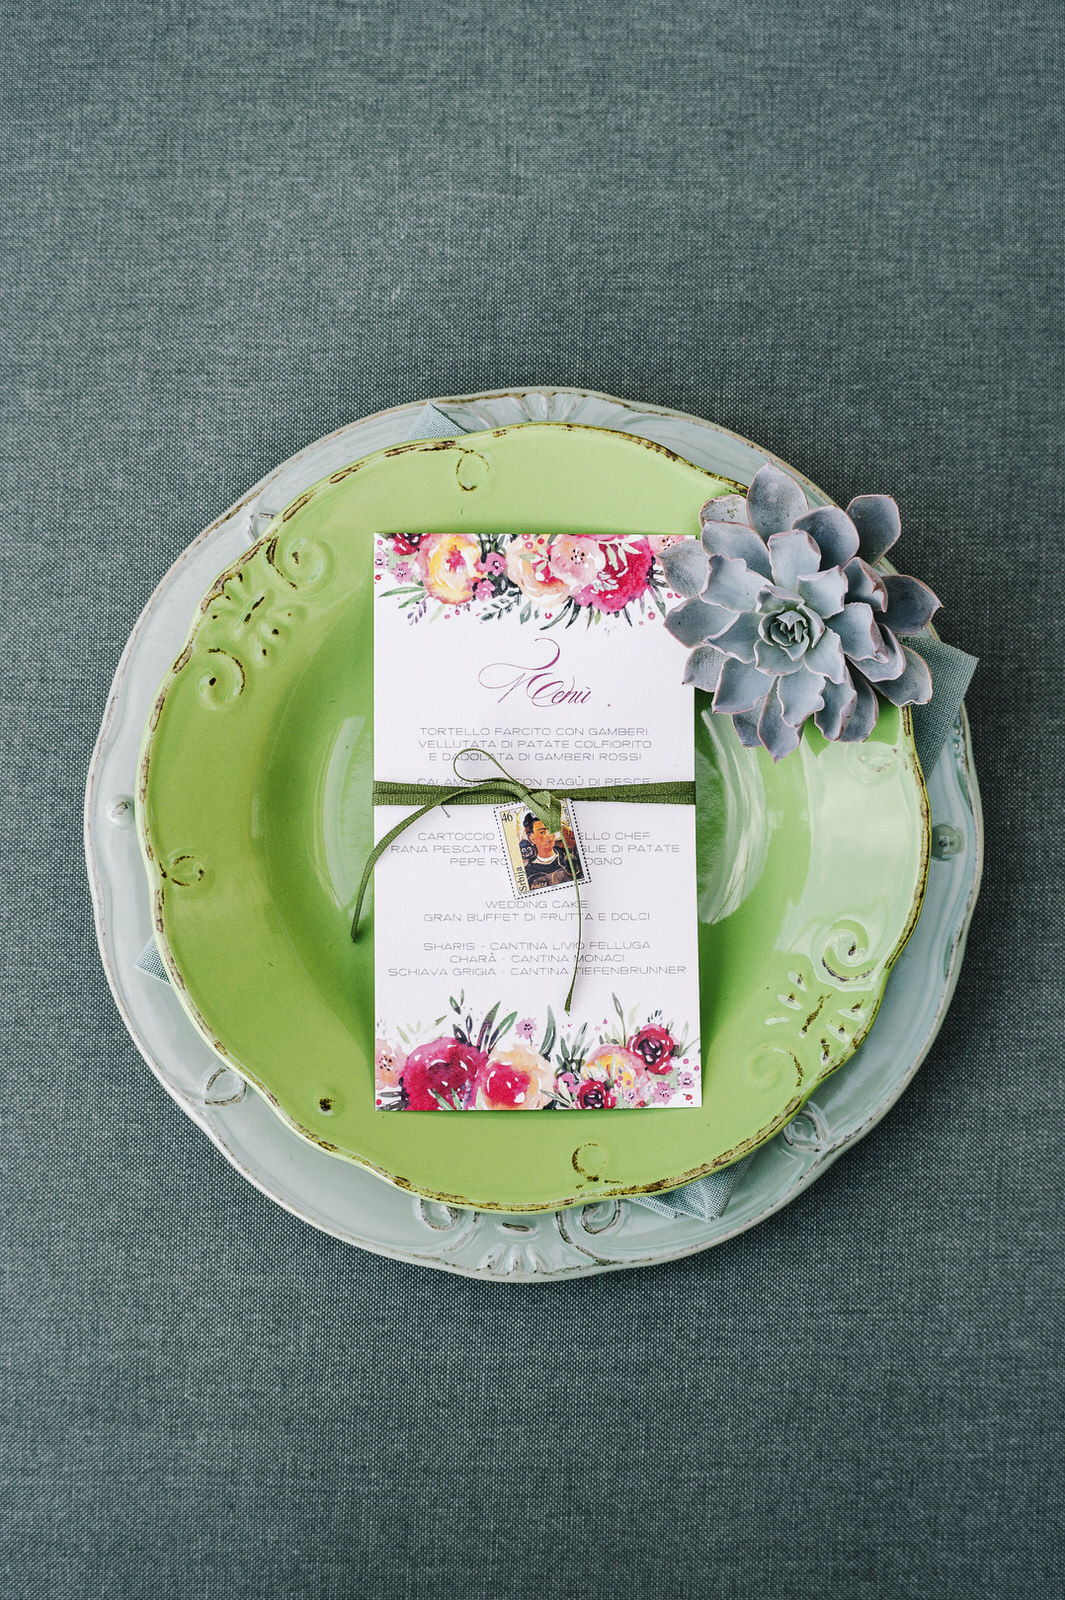 frida insprired menu in green and light blue dishes